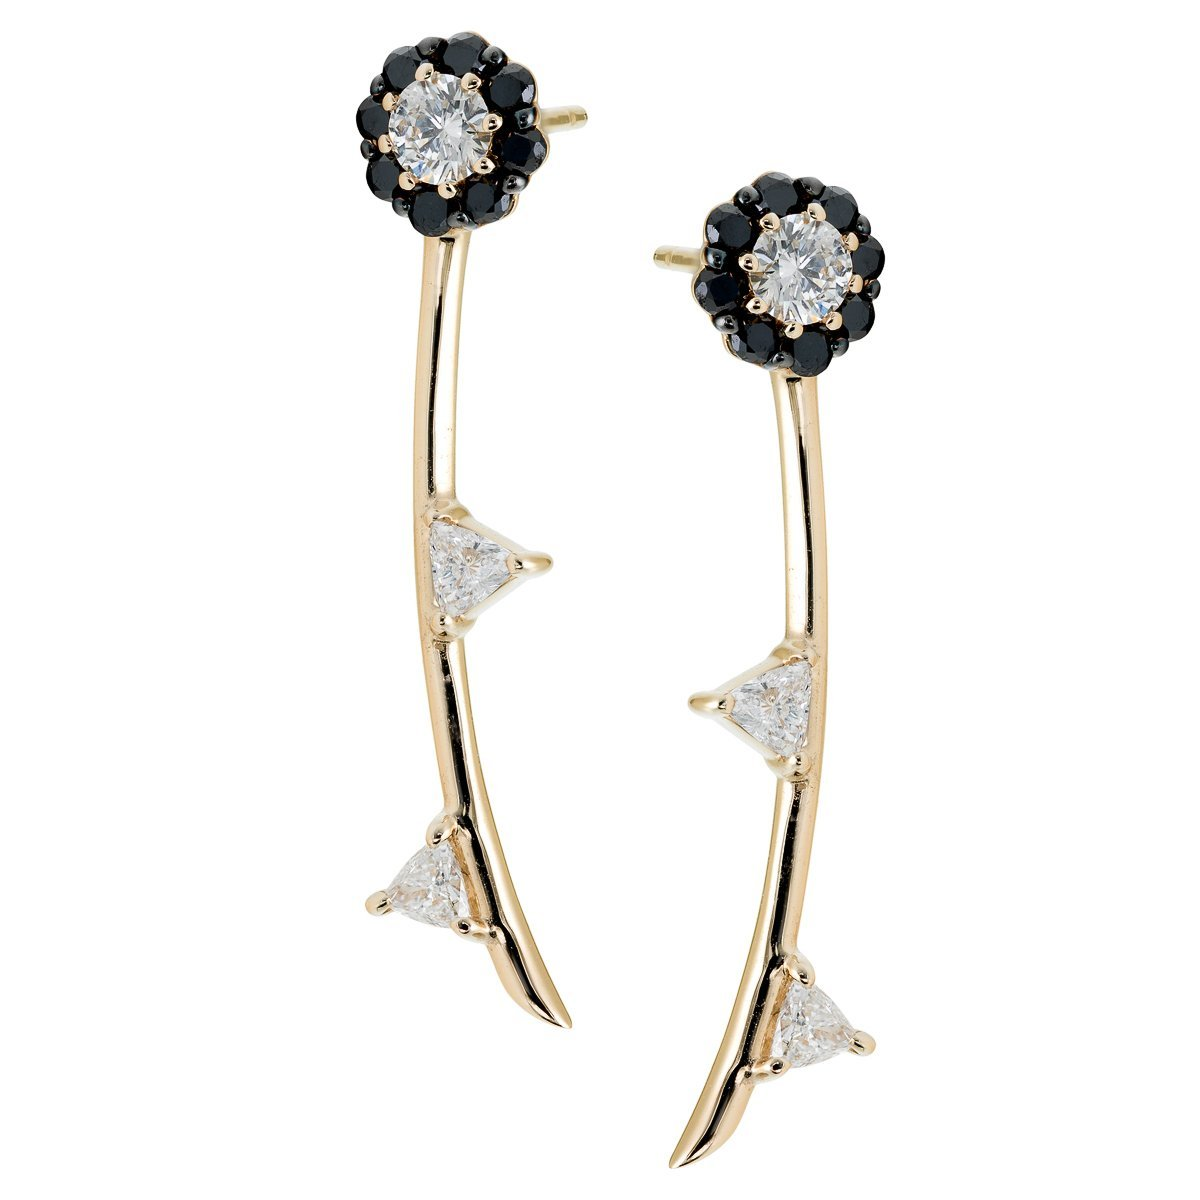 Irini Black Diamond Full Bloom Earrings with white diamond leaves in 14k gold, post back  can be work as a pair or as a single earring, a edgy design to a classic design, made in nyc